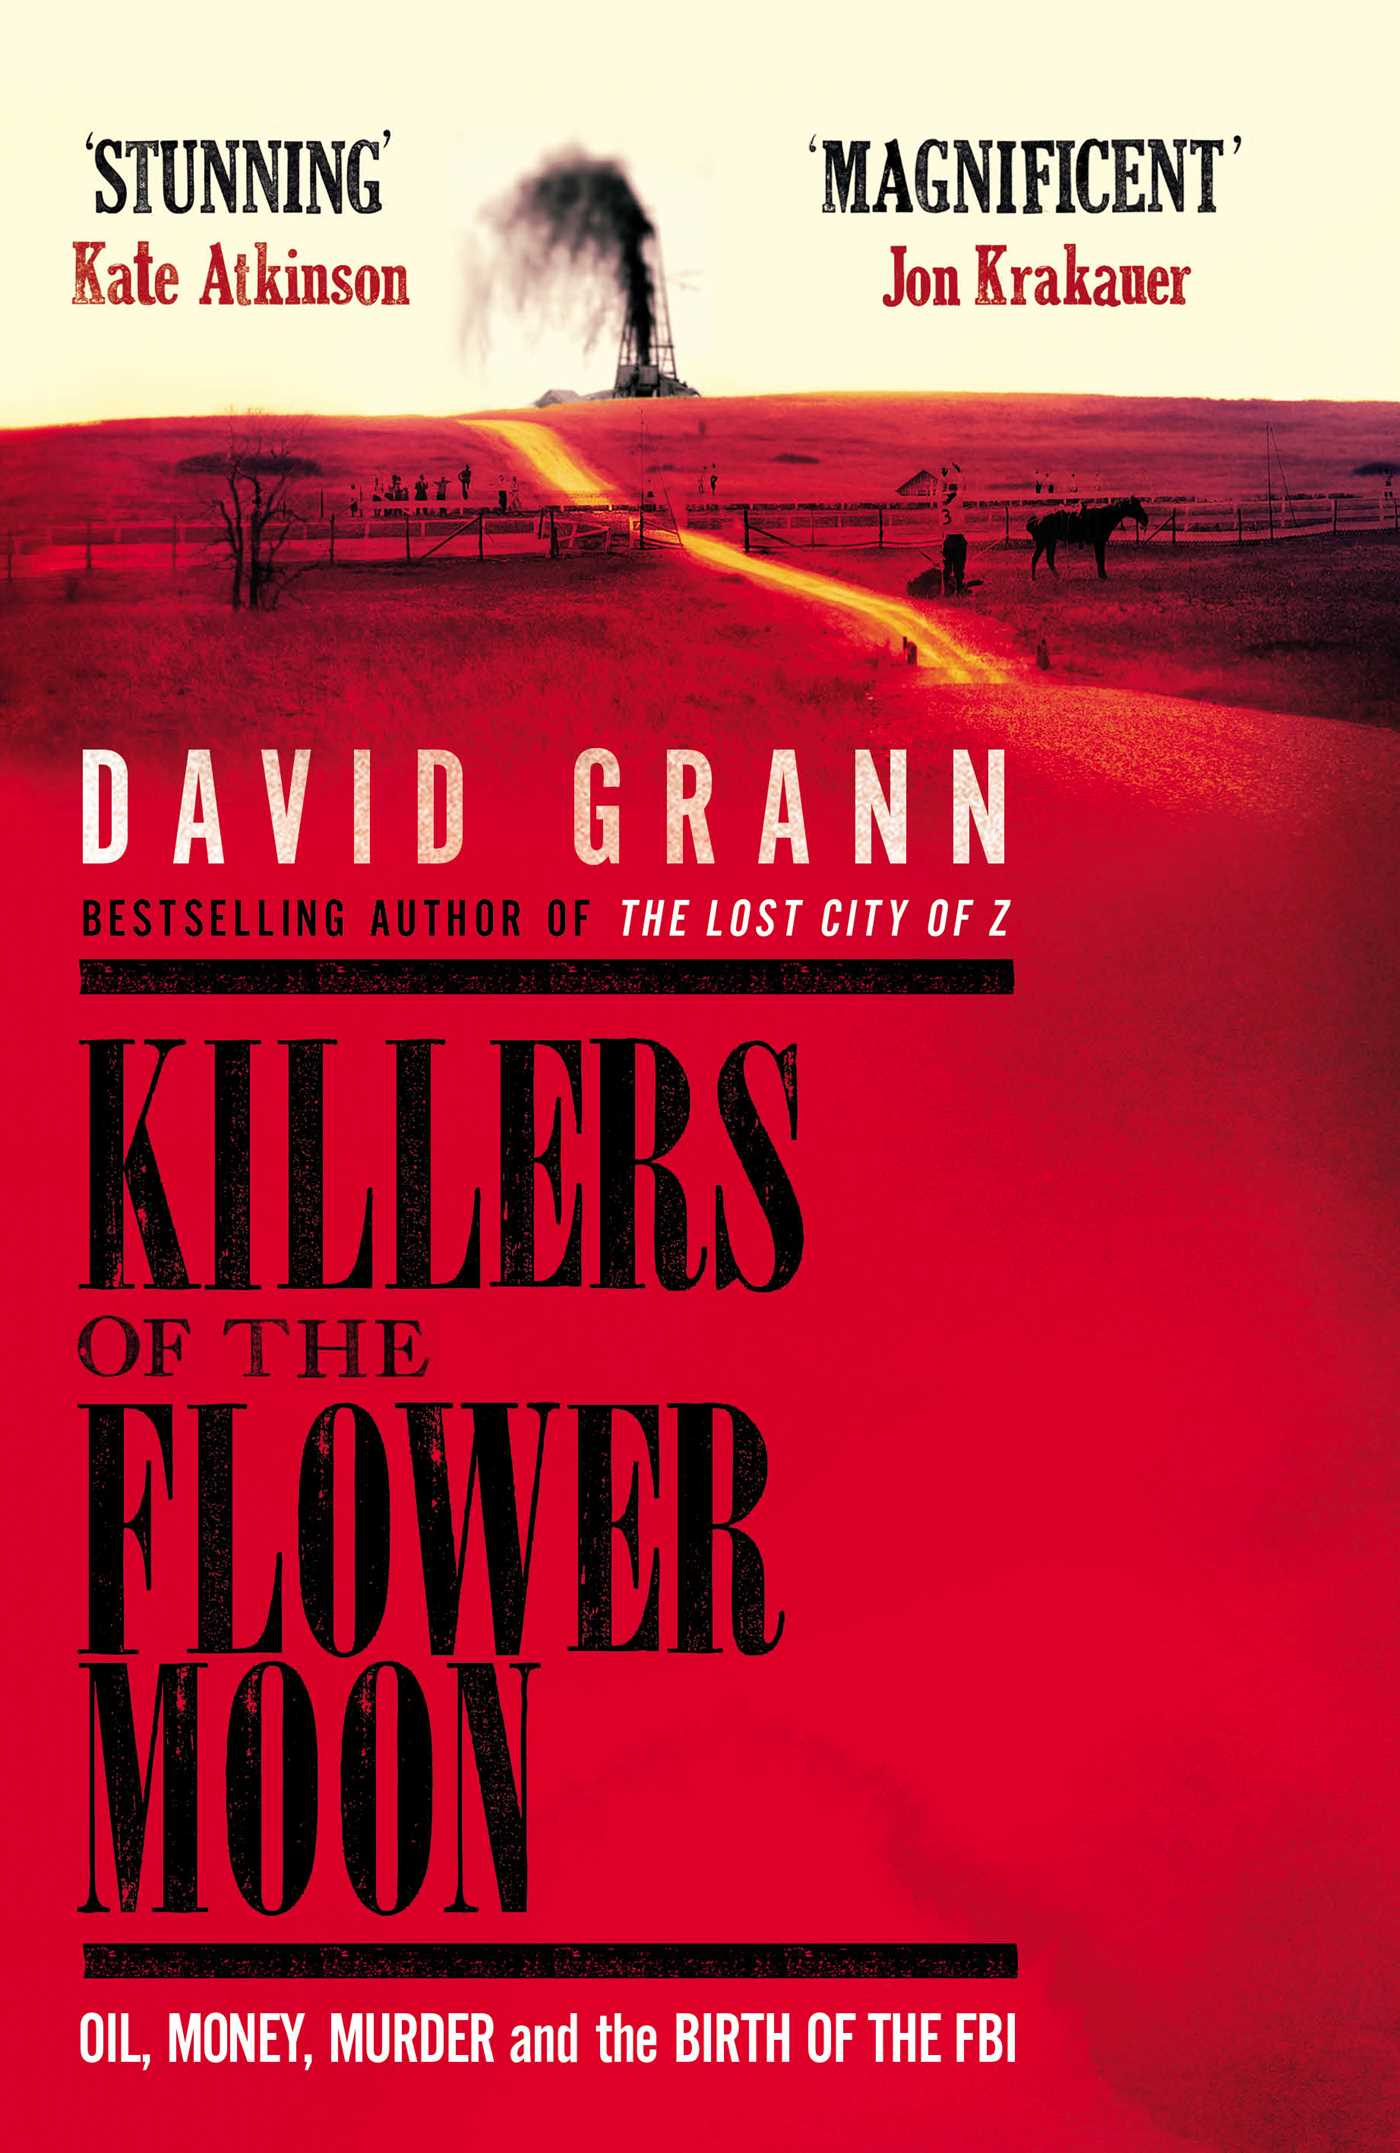 Killers of the flower moon 9781471140266 hr